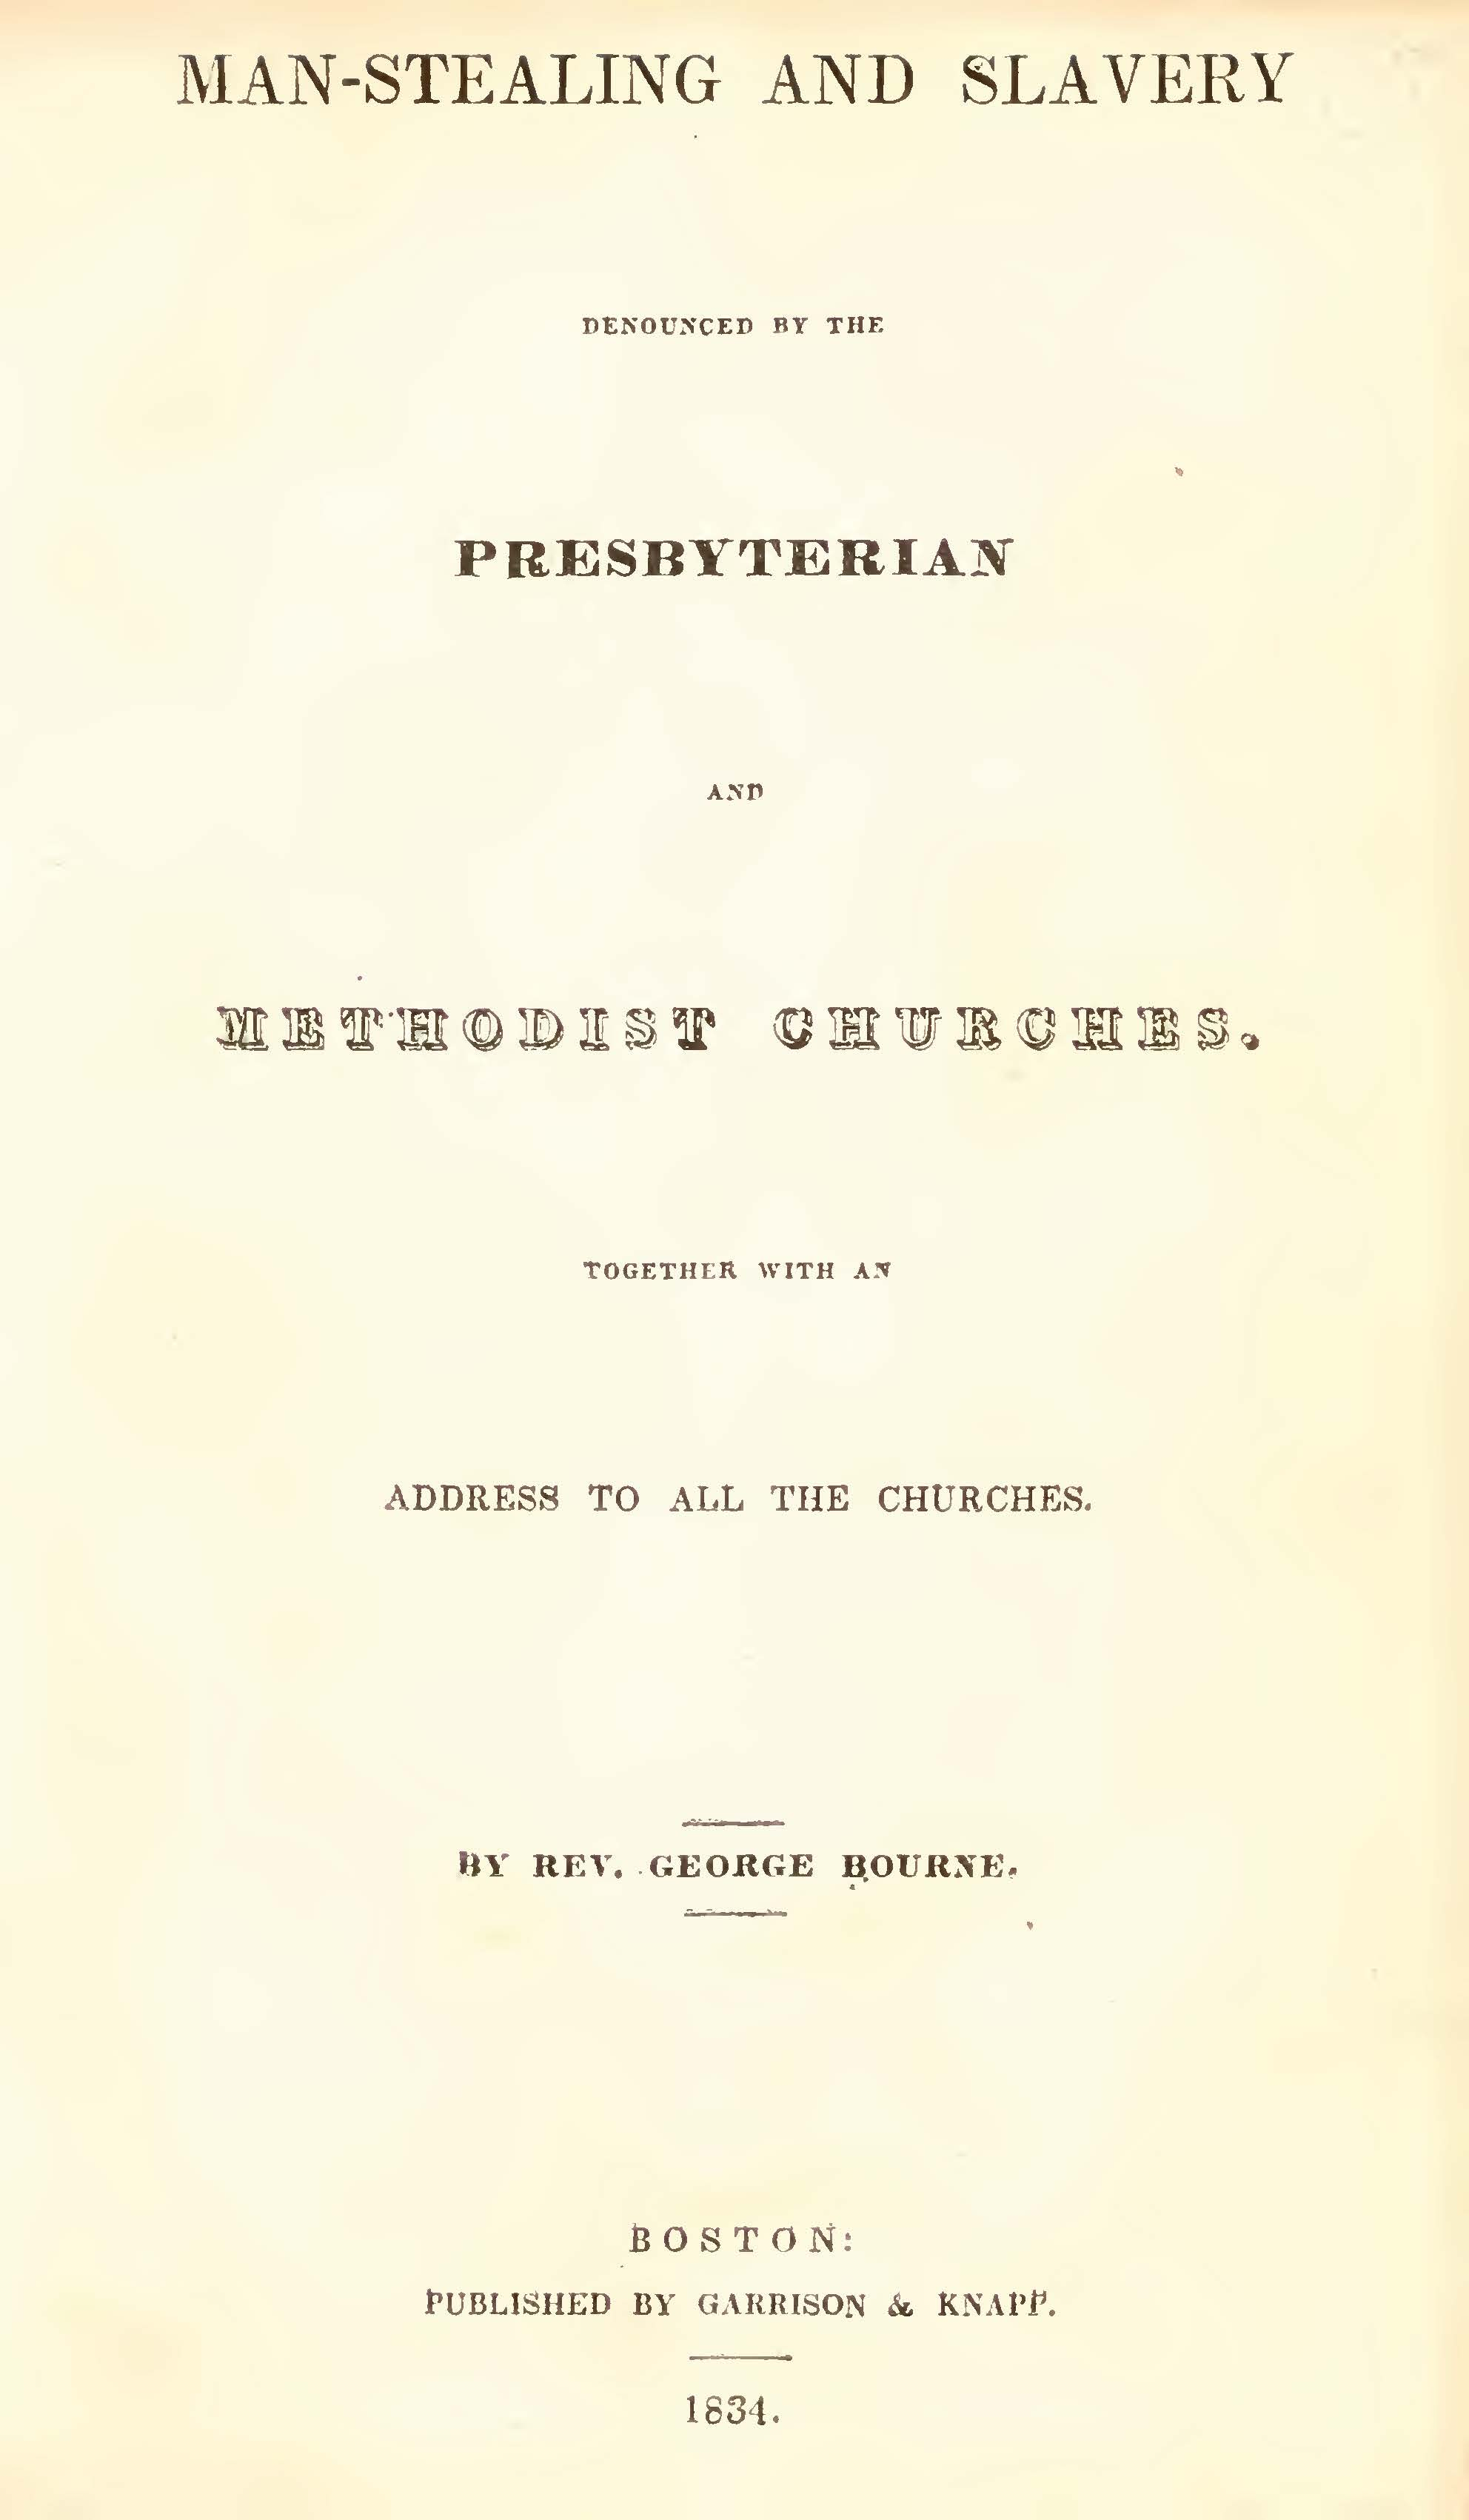 Bourne, George, Man-Stealing and Slavery Denounced by Presbyterian and Methodist Churches Title Page.jpg